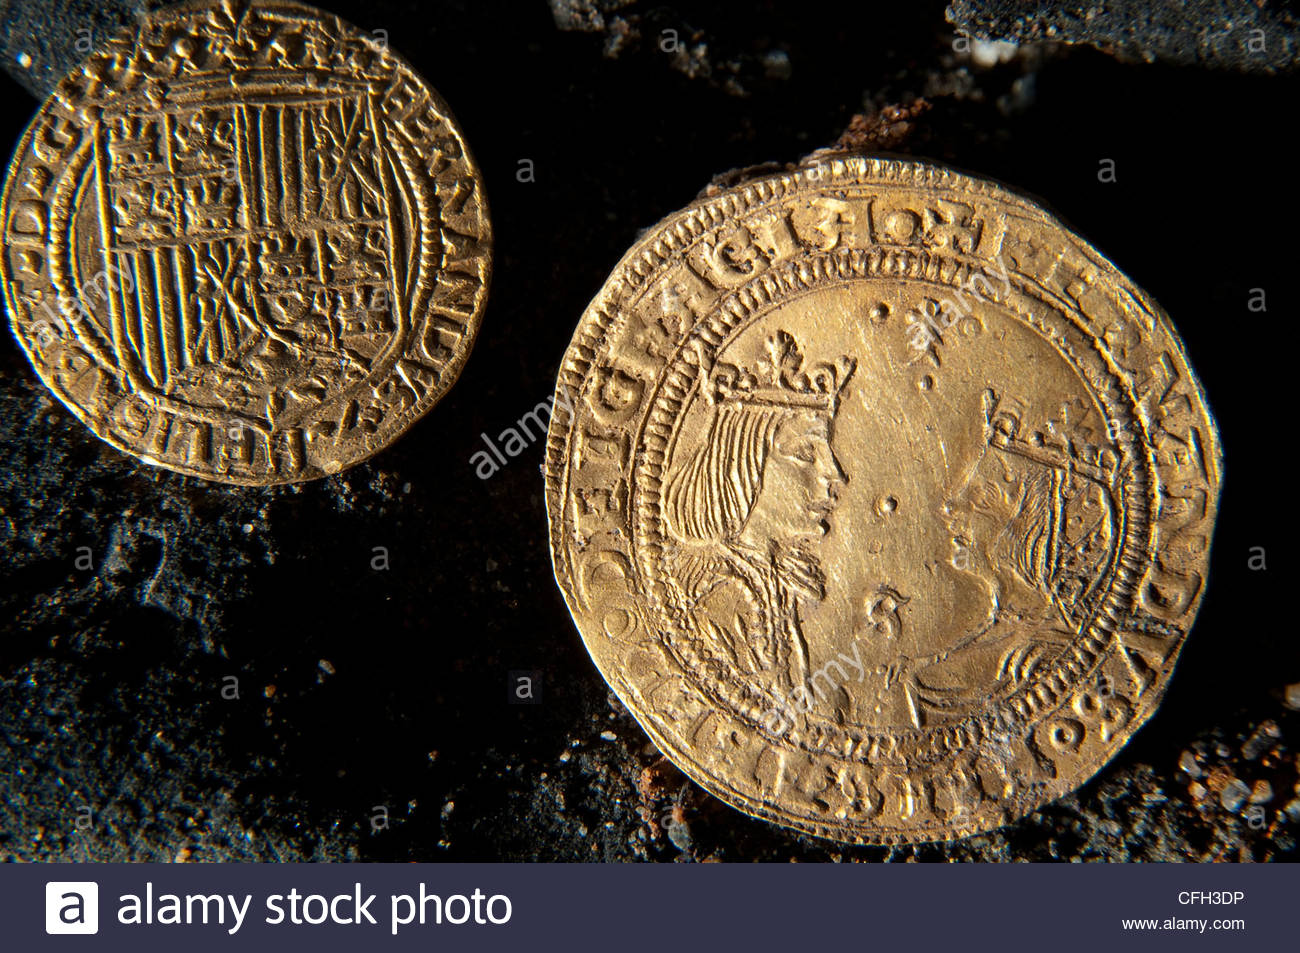 Spanish excelente coins excavated at the shipwreck site of a Portuguese trading vessel. - Stock Image